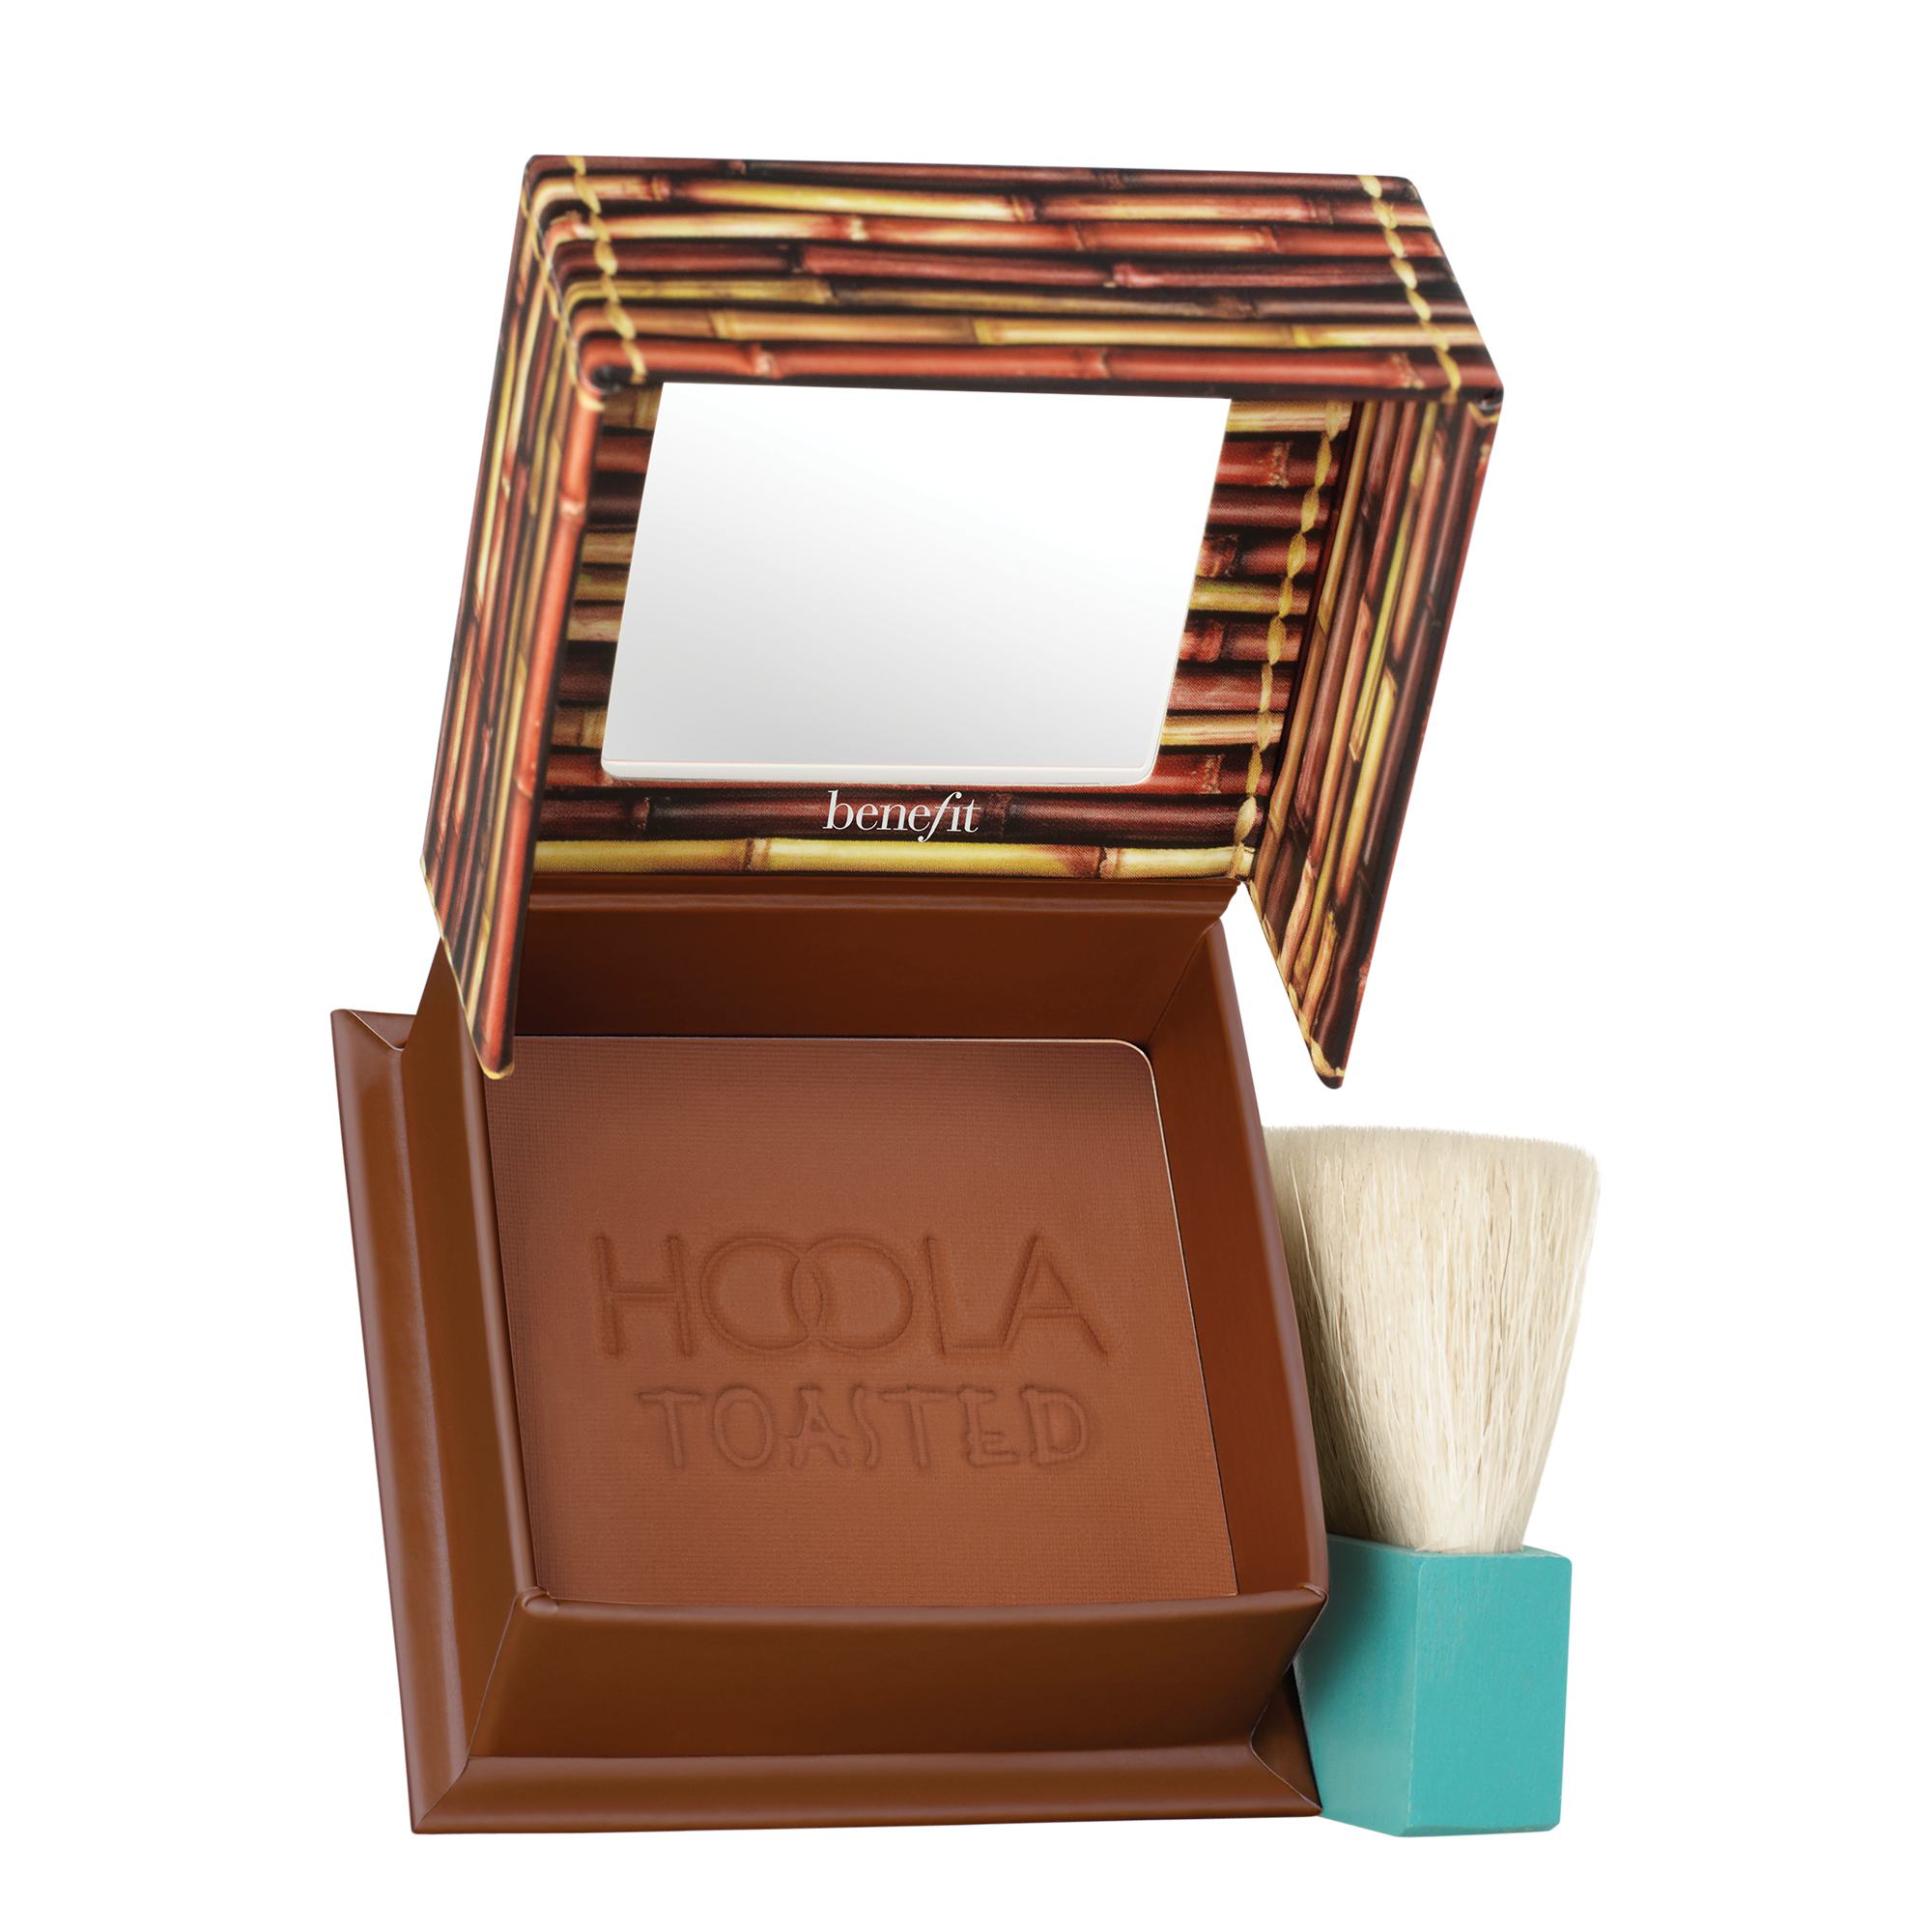 benefit-hoola-toasted.png